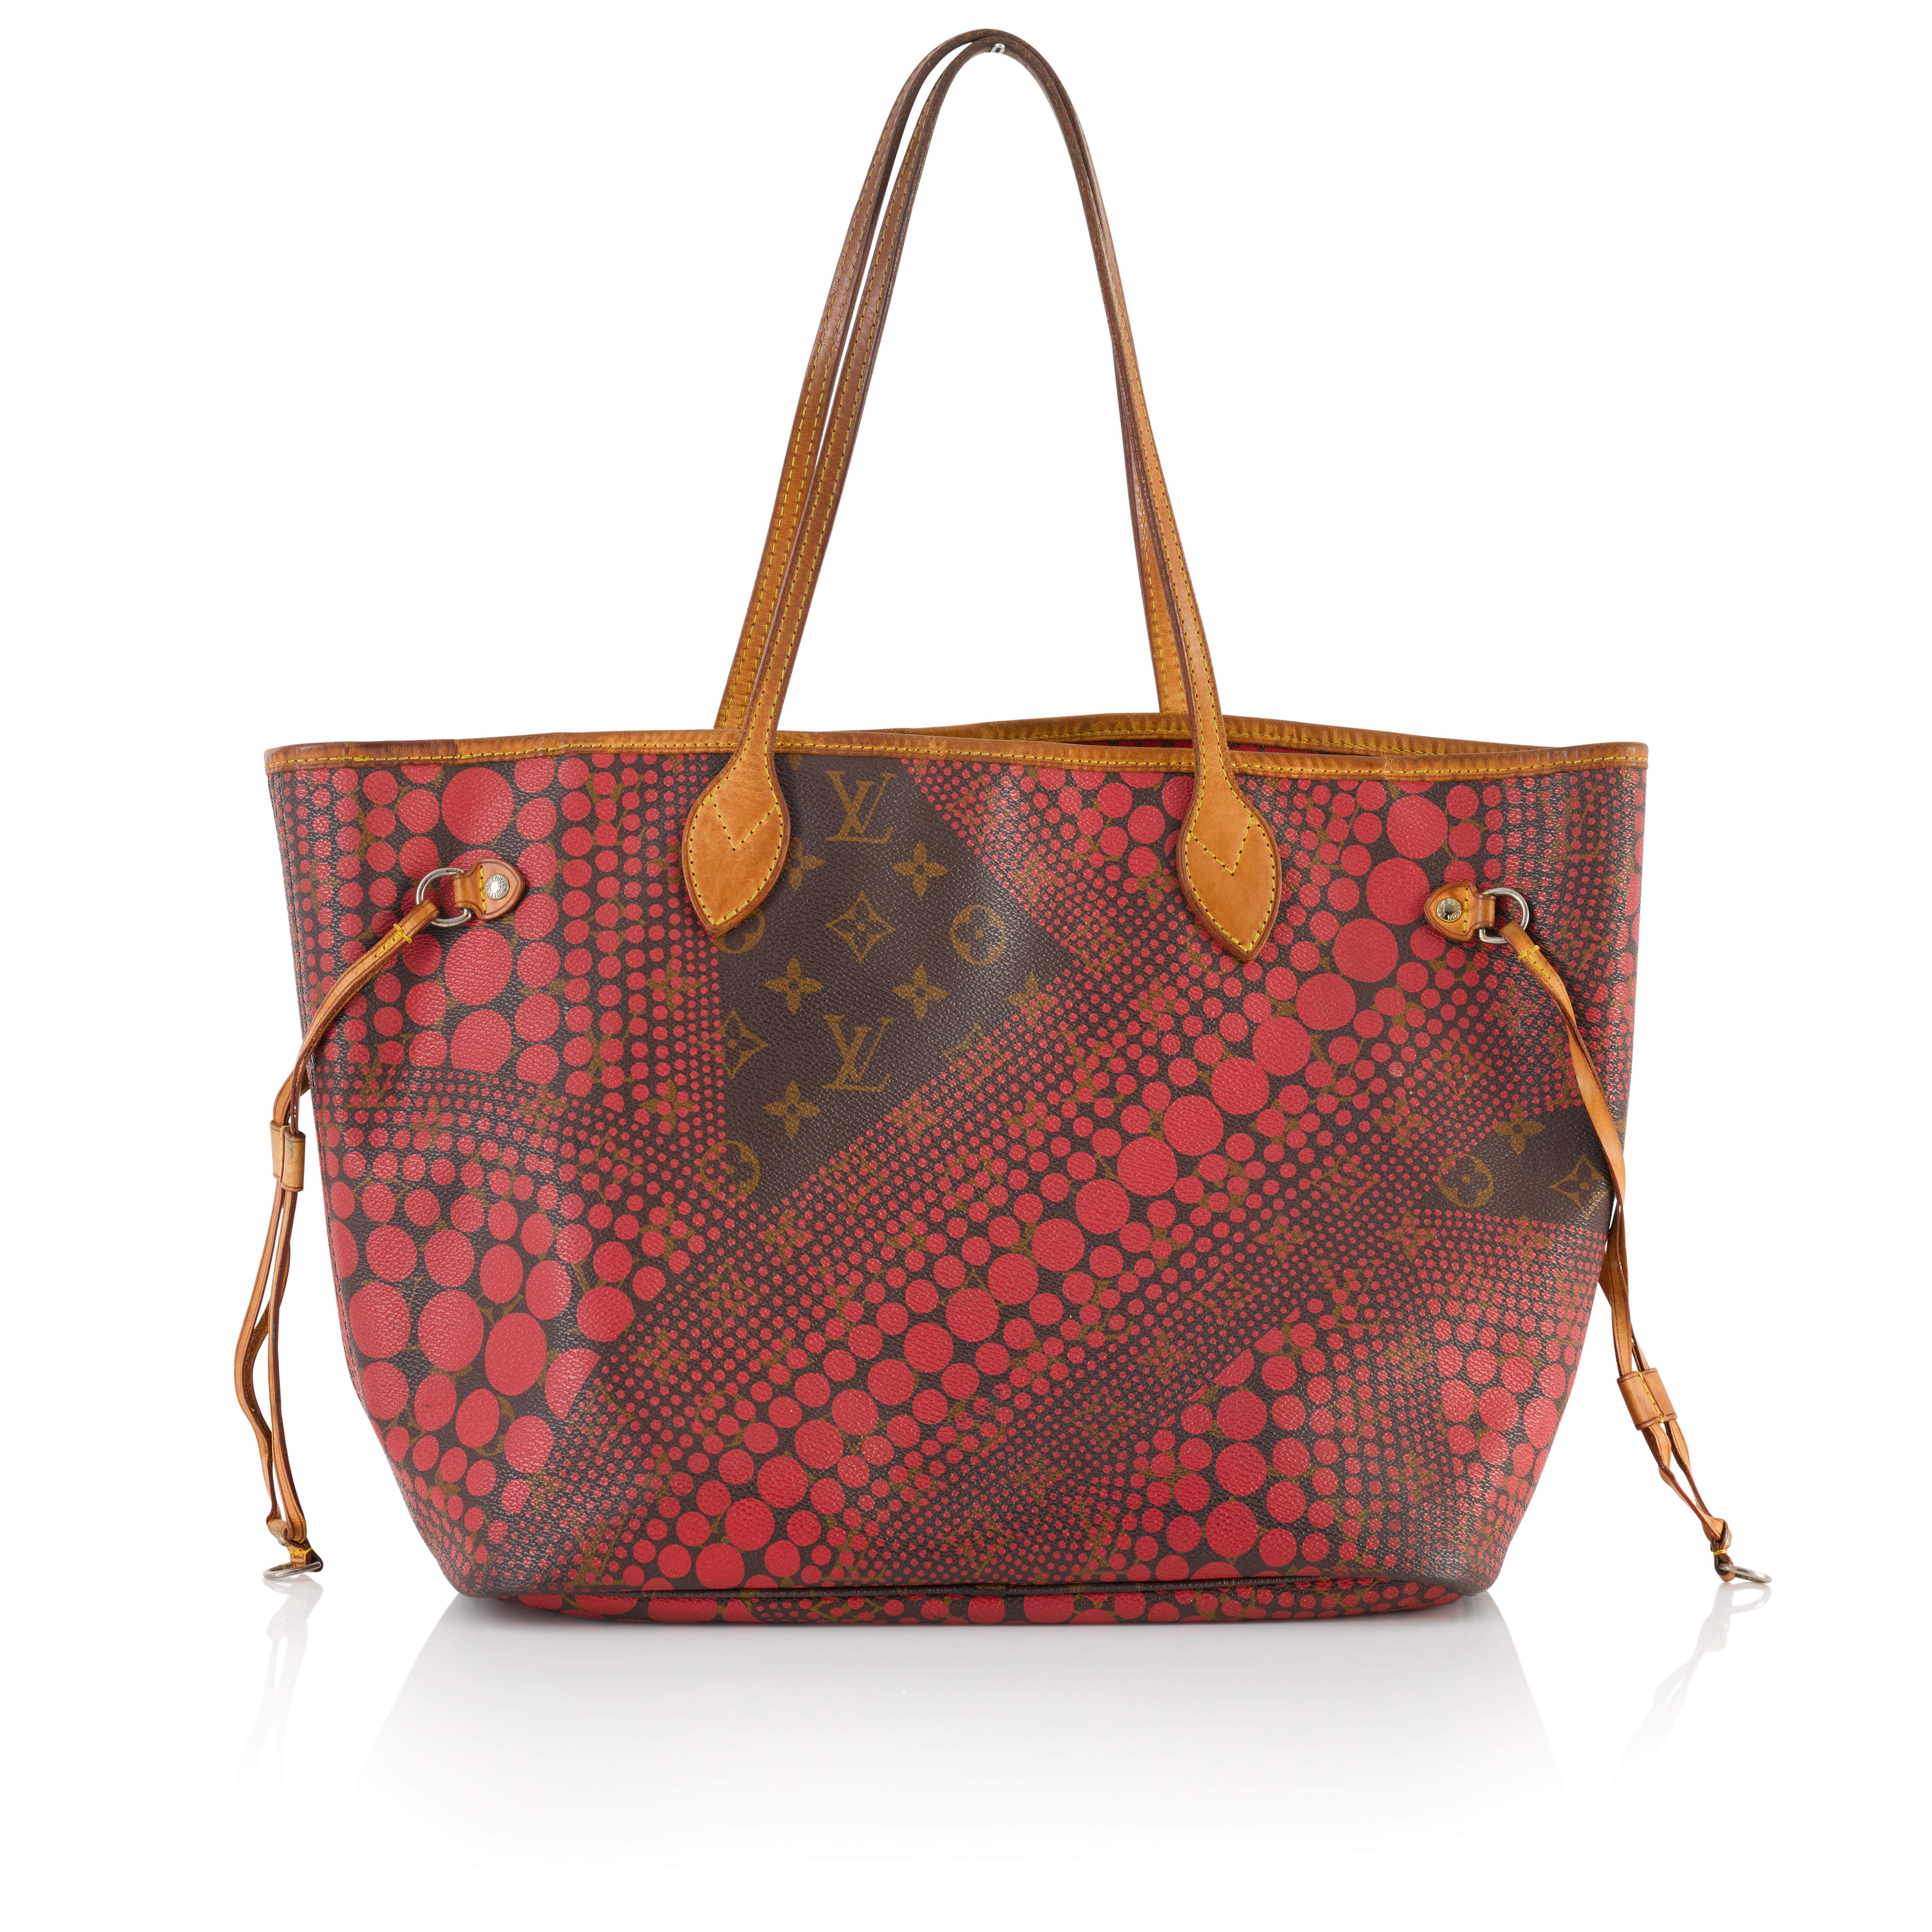 View full screen - View 1 of Lot 6. Red Monogram Dots Infinity Neverfull MM Tote in Vachetta Leather with Goldtone Hardware, 2012.